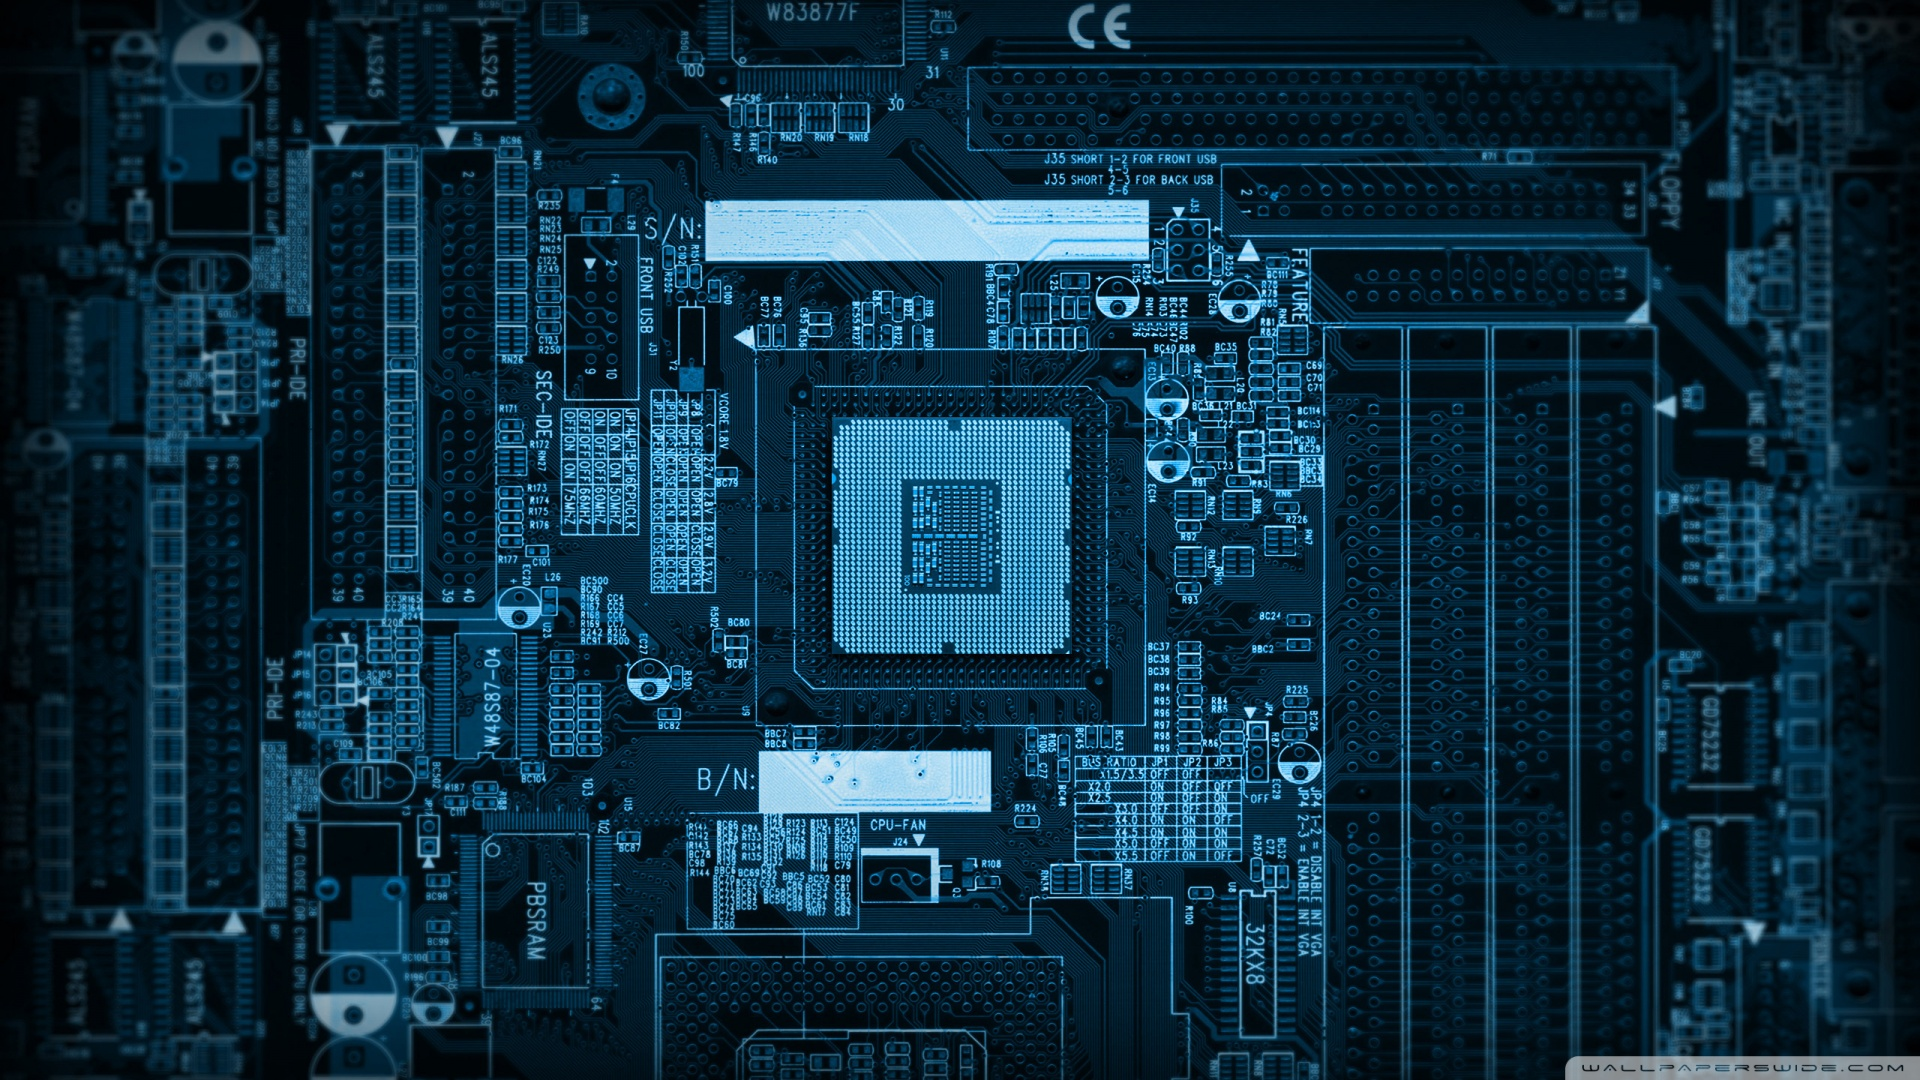 motherboard_2-wallpaper-1920x1080